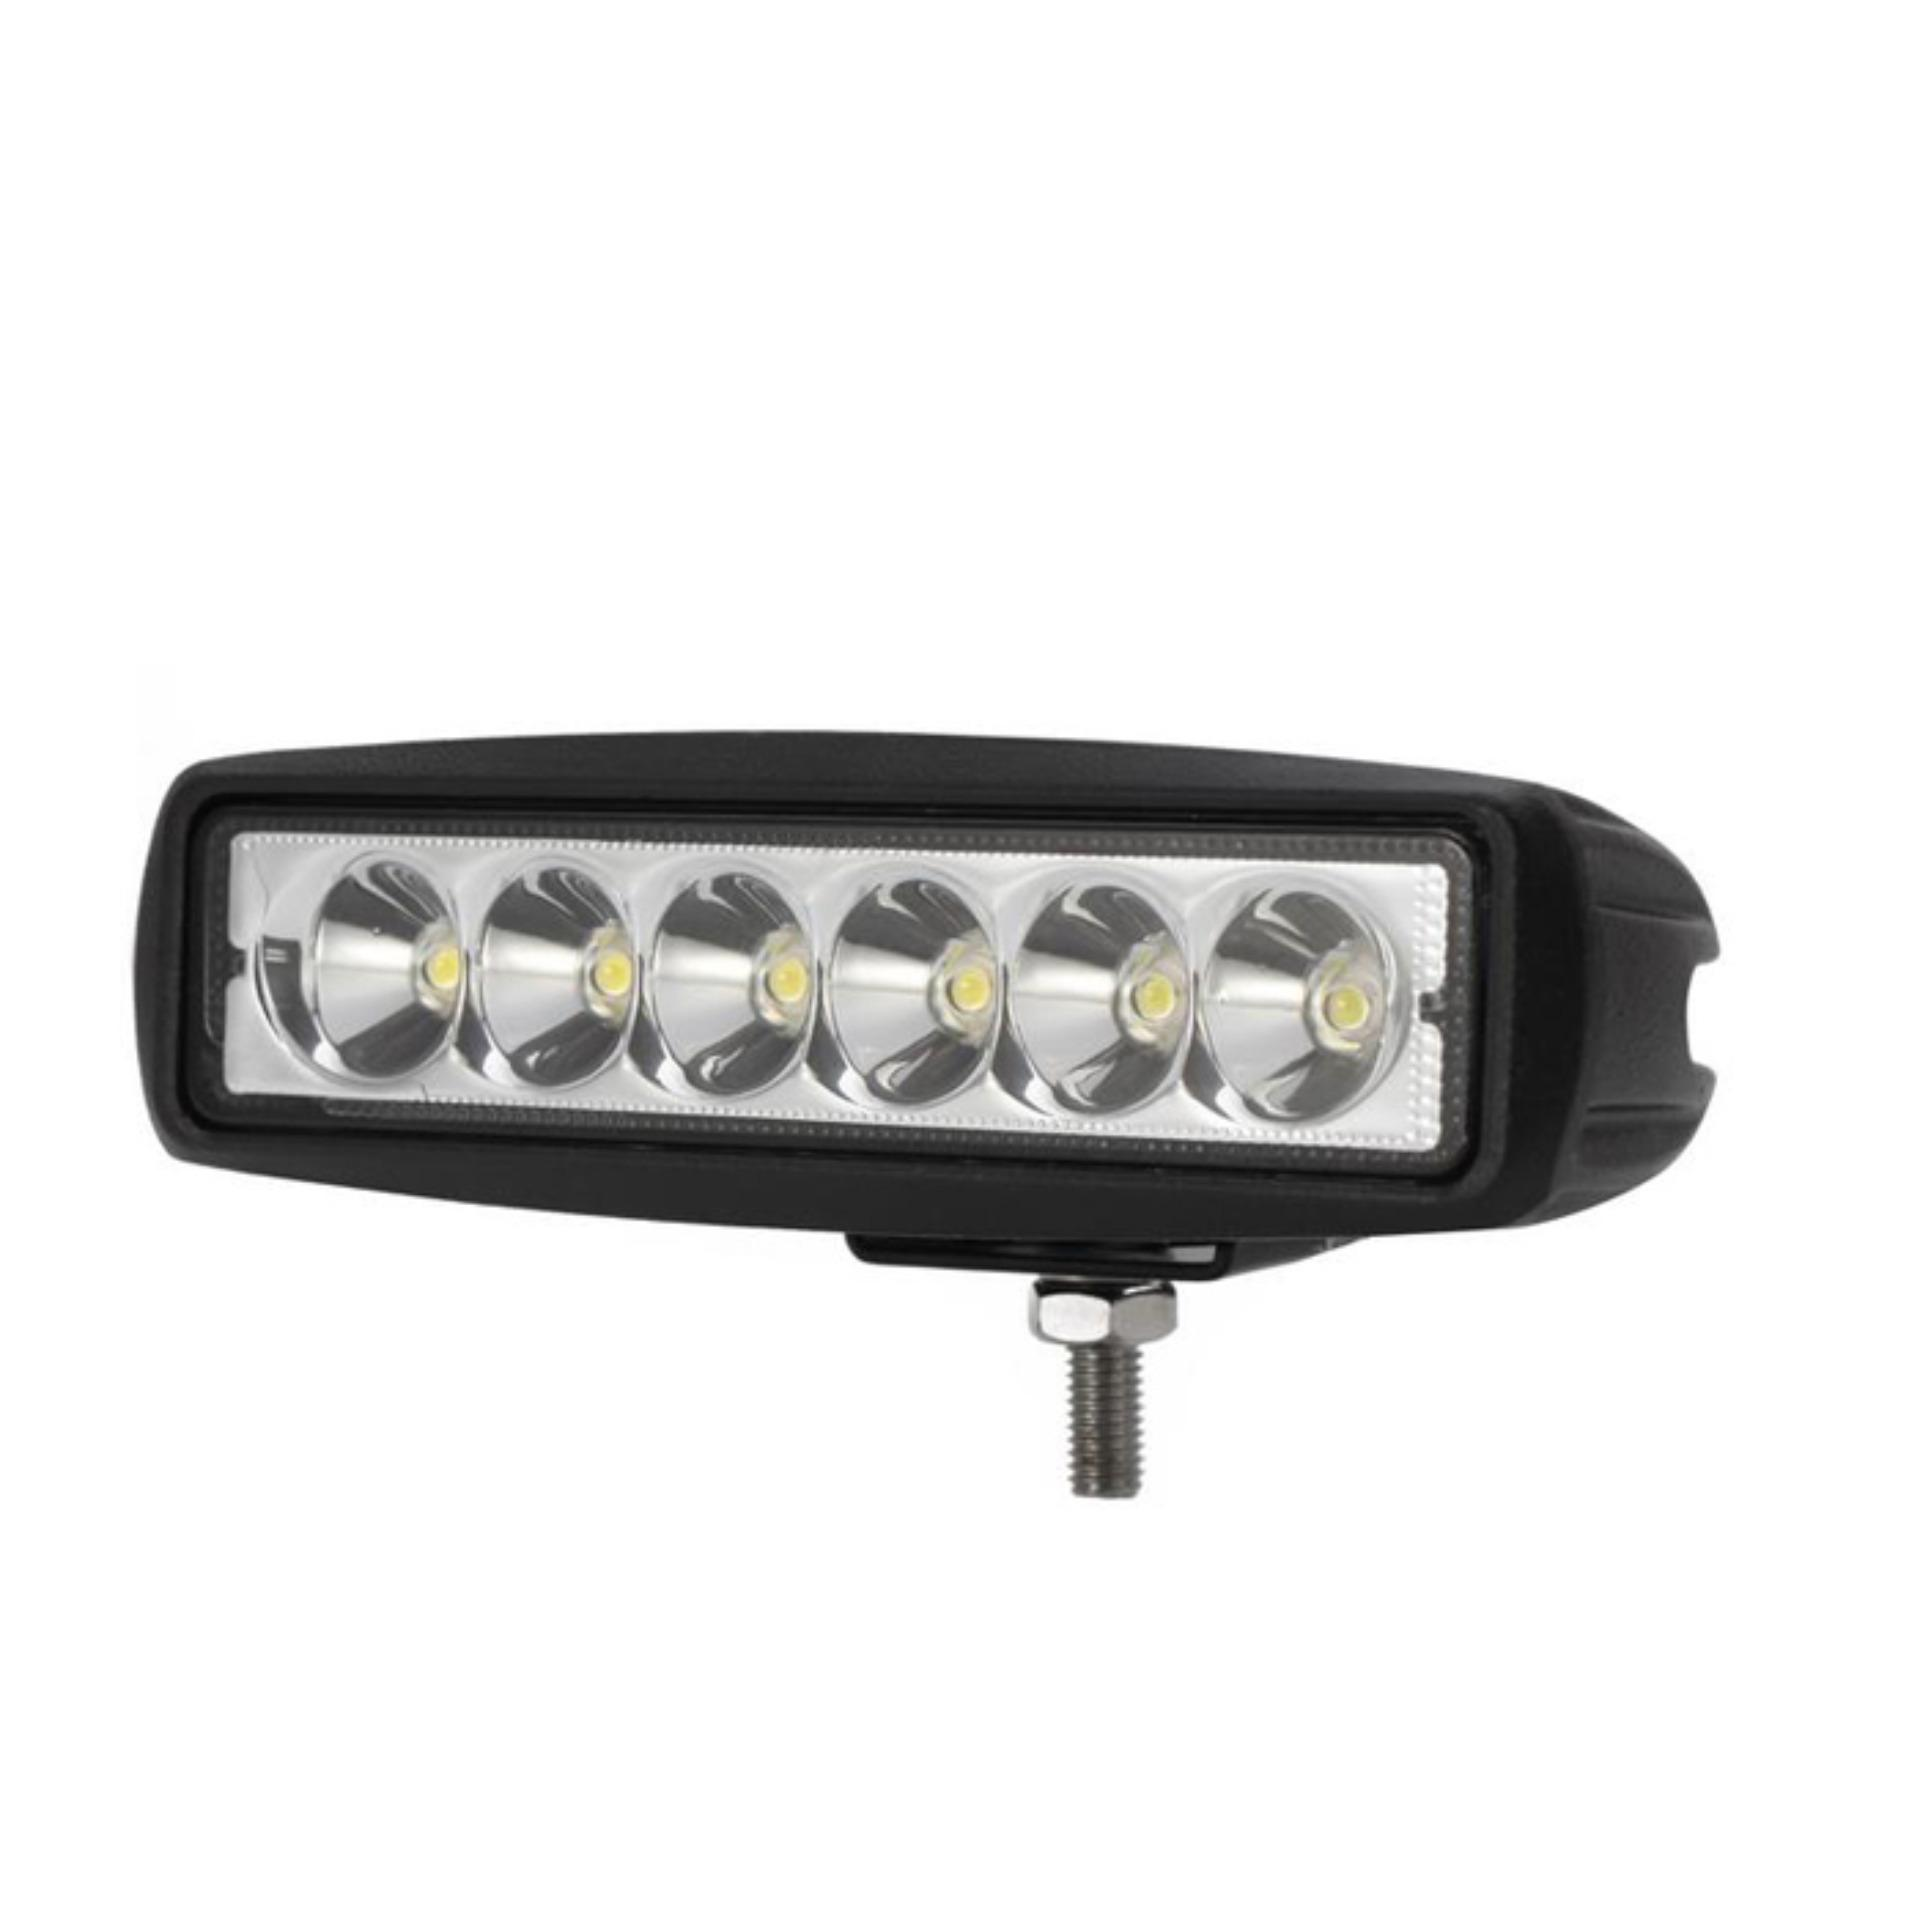 LED Work Light 6 Lampu Sorot 18W